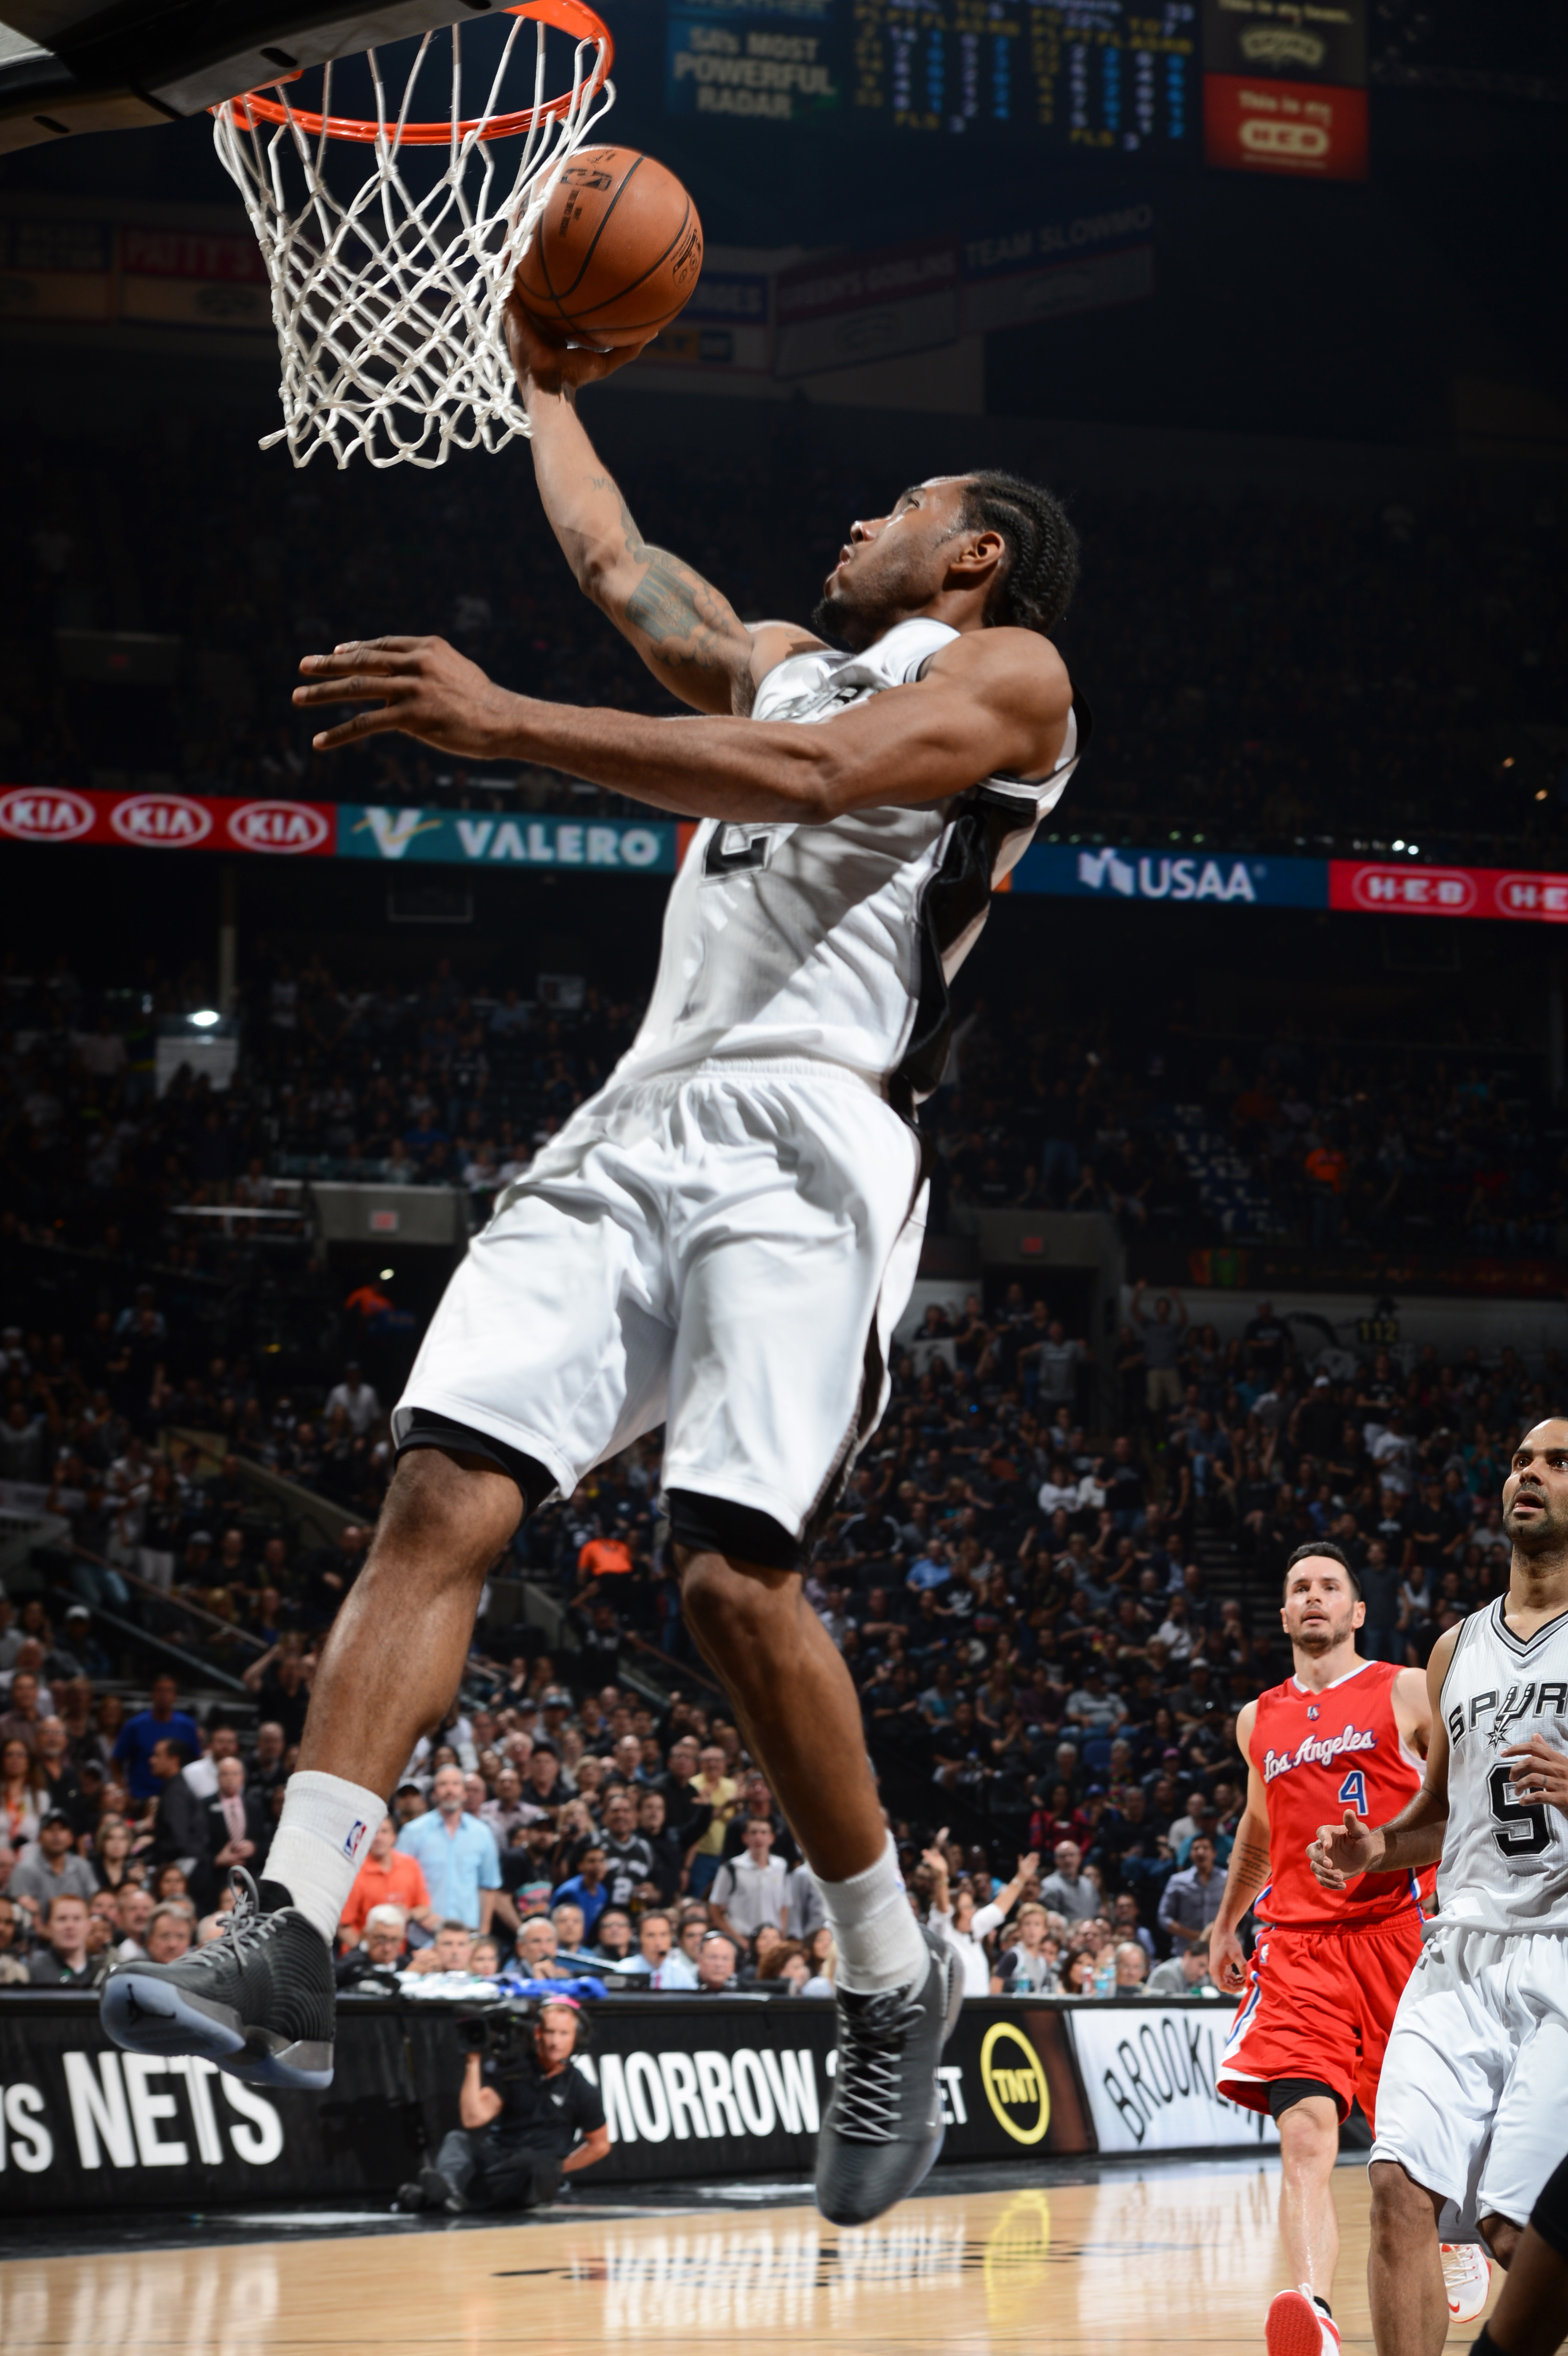 SAN ANTONIO - APRIL 24: Kawhi Leonard #2 of the San Antonio Spurs goes up for a shot against the Los Angeles Clippers during Game Three of the Western Conference Quarterfinals at the AT&T Center on April 24, 2015 in San Antonio, Texas.